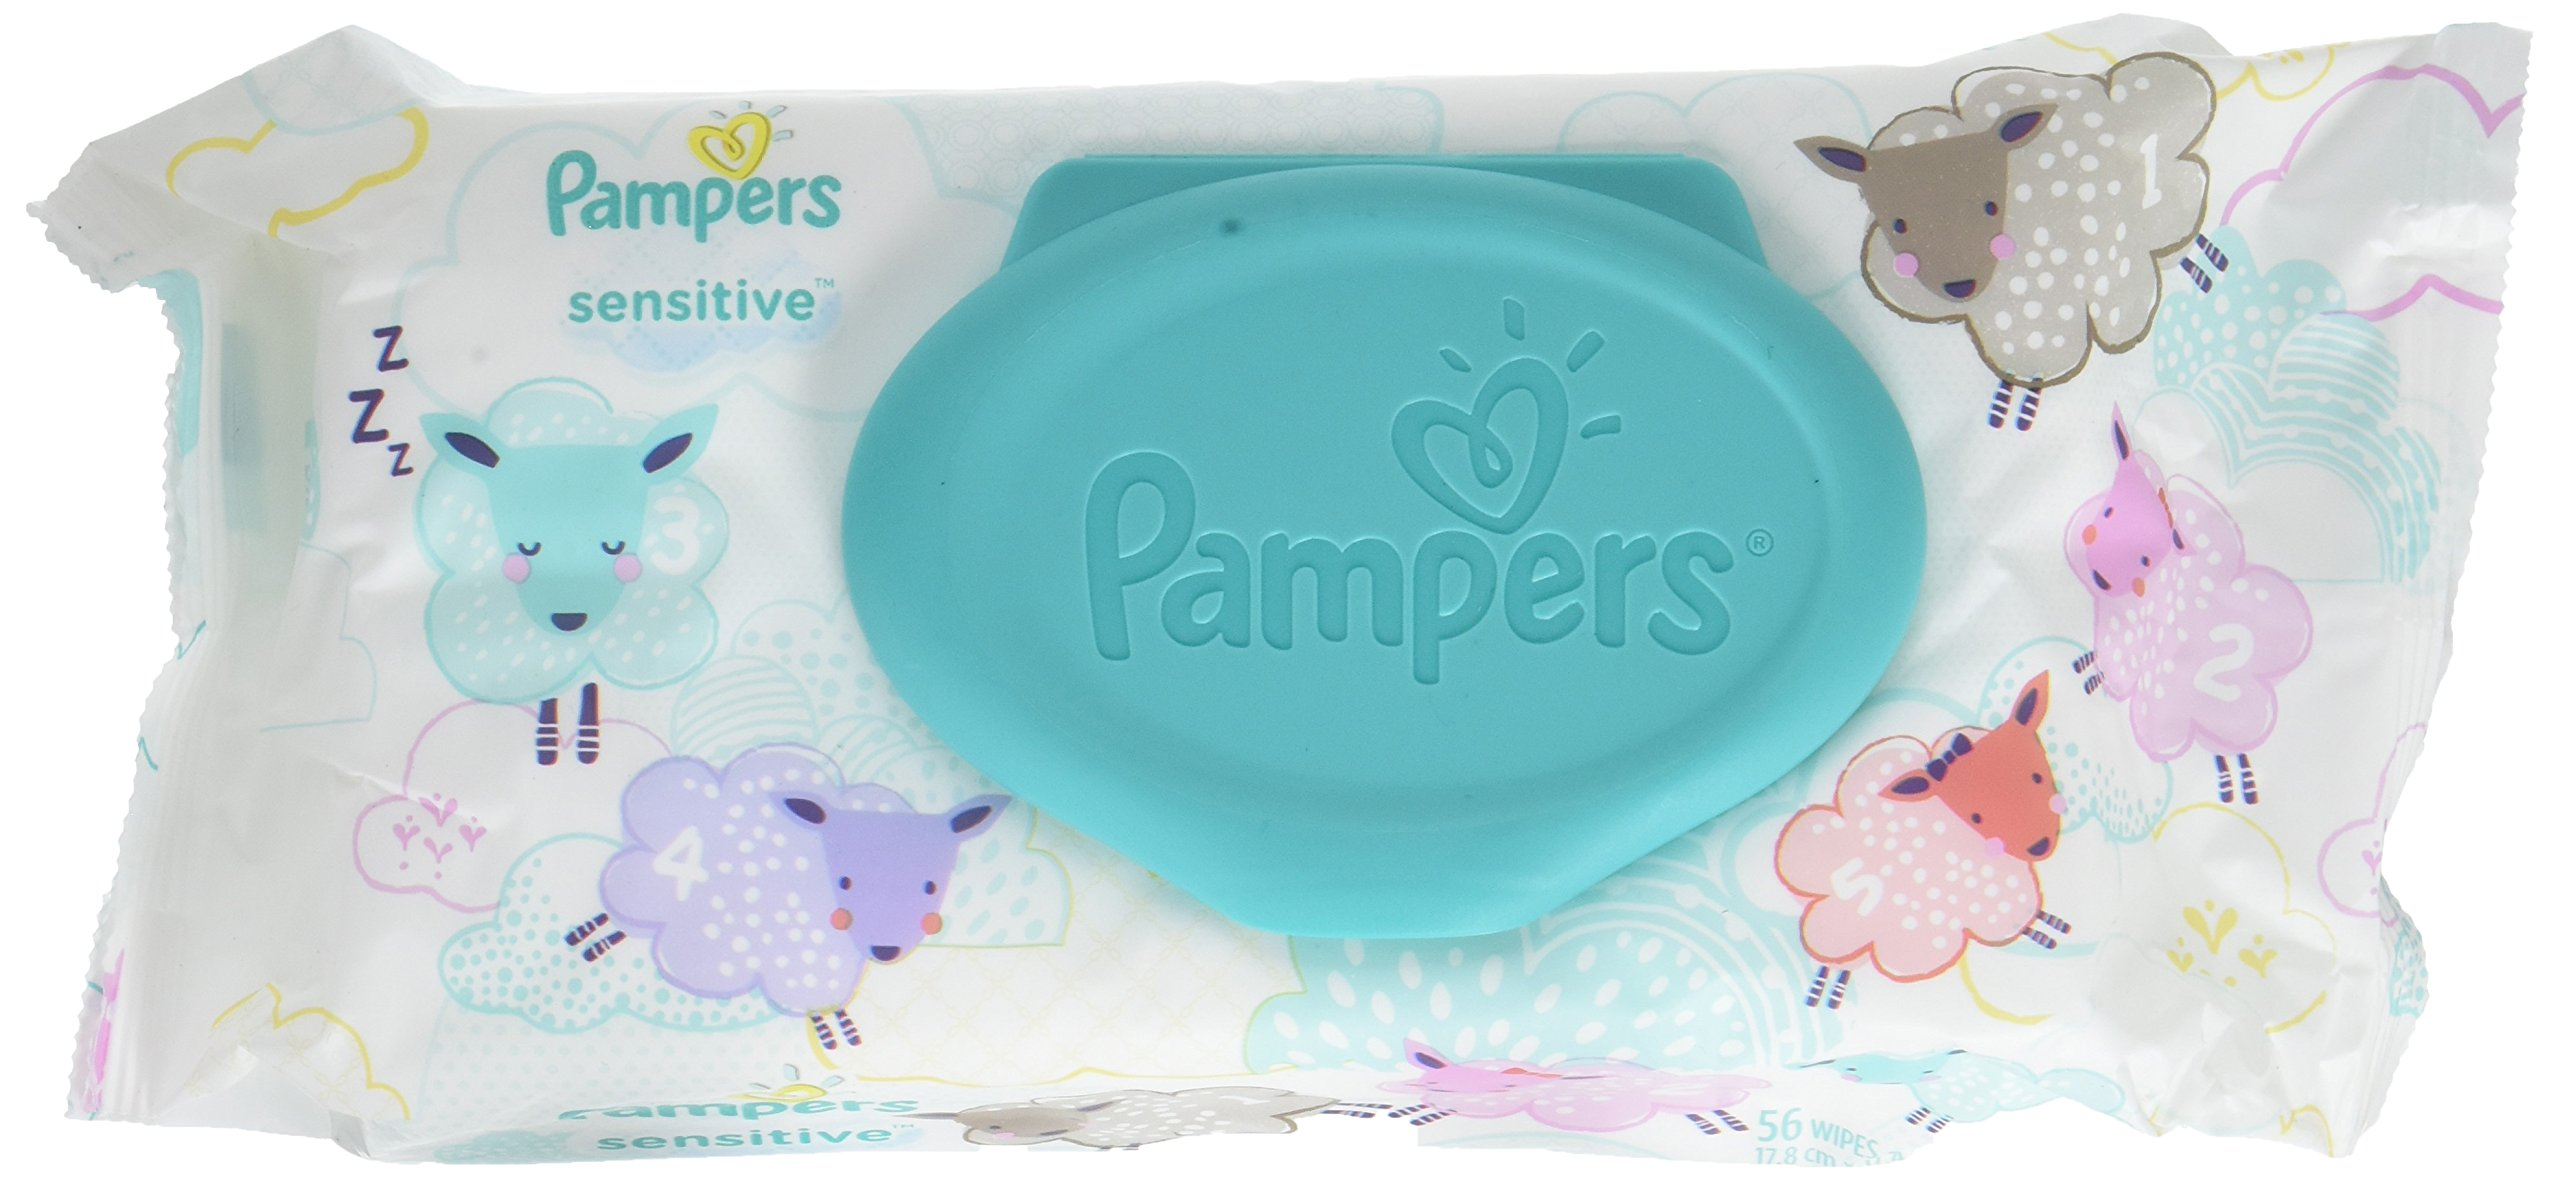 Pampers Sensitive Wipes Travel Pack 56 Count (Pack of 4)